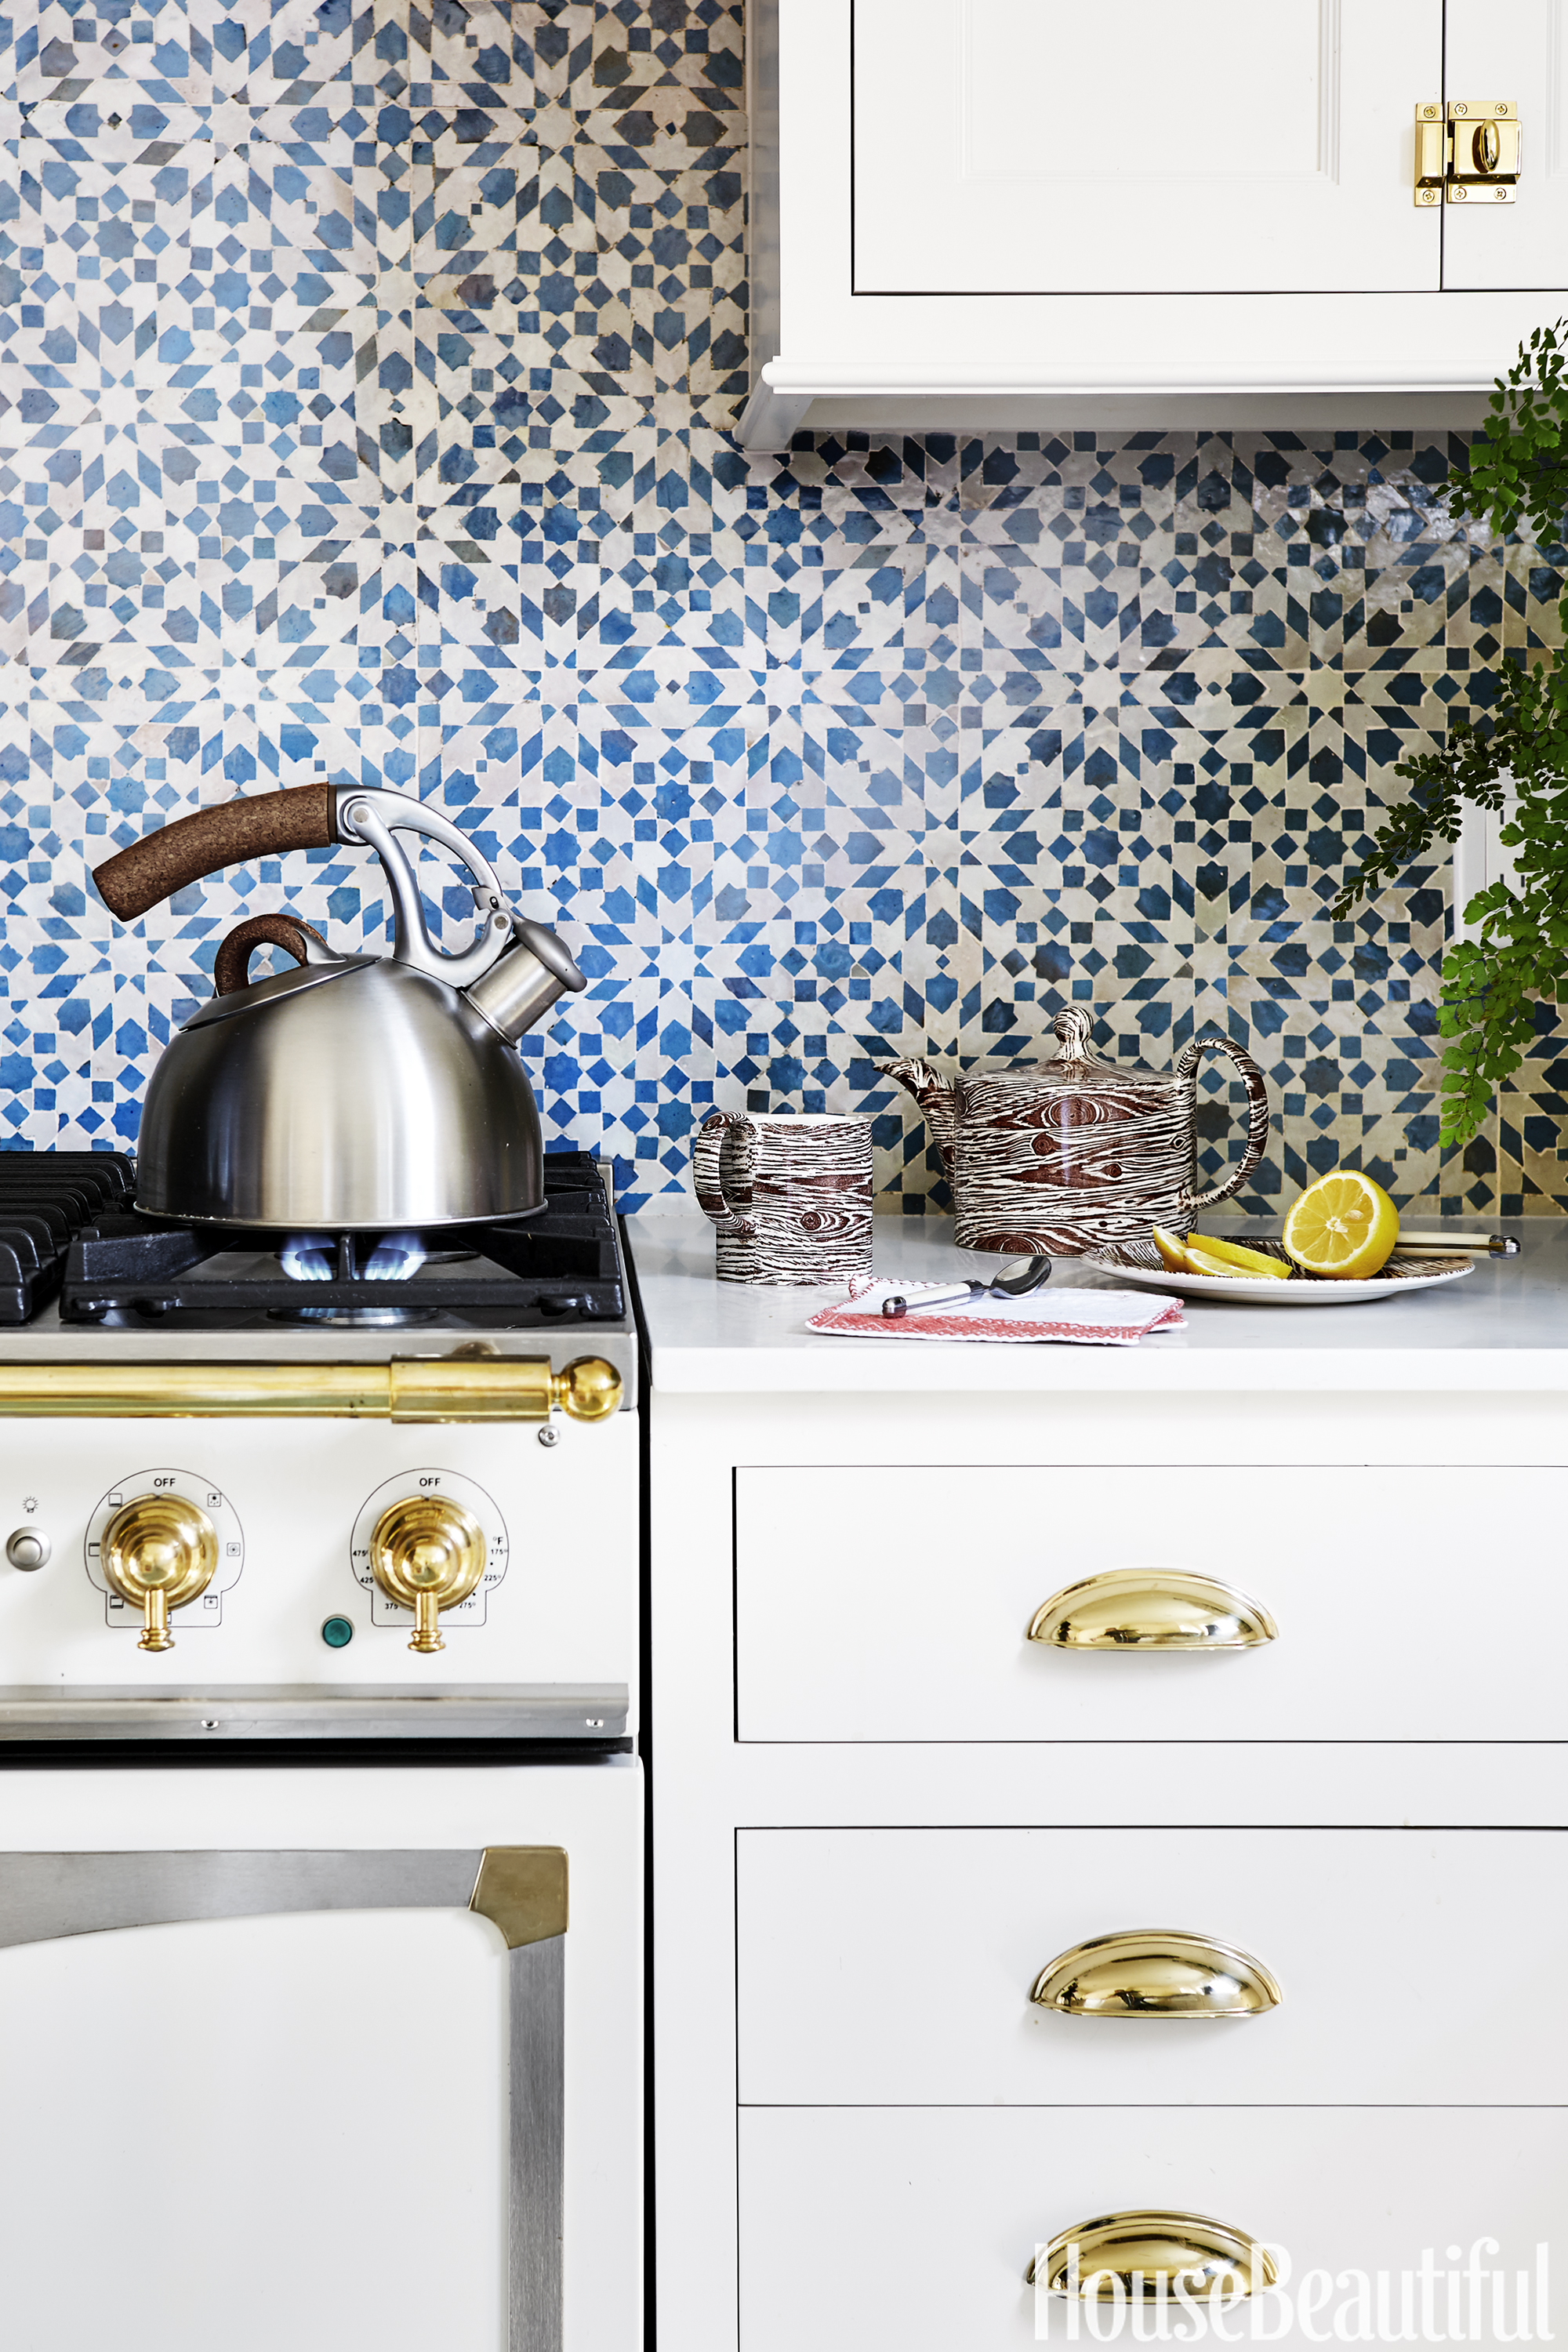 50 Best Kitchen Backsplash Ideas - Tile Designs for ...